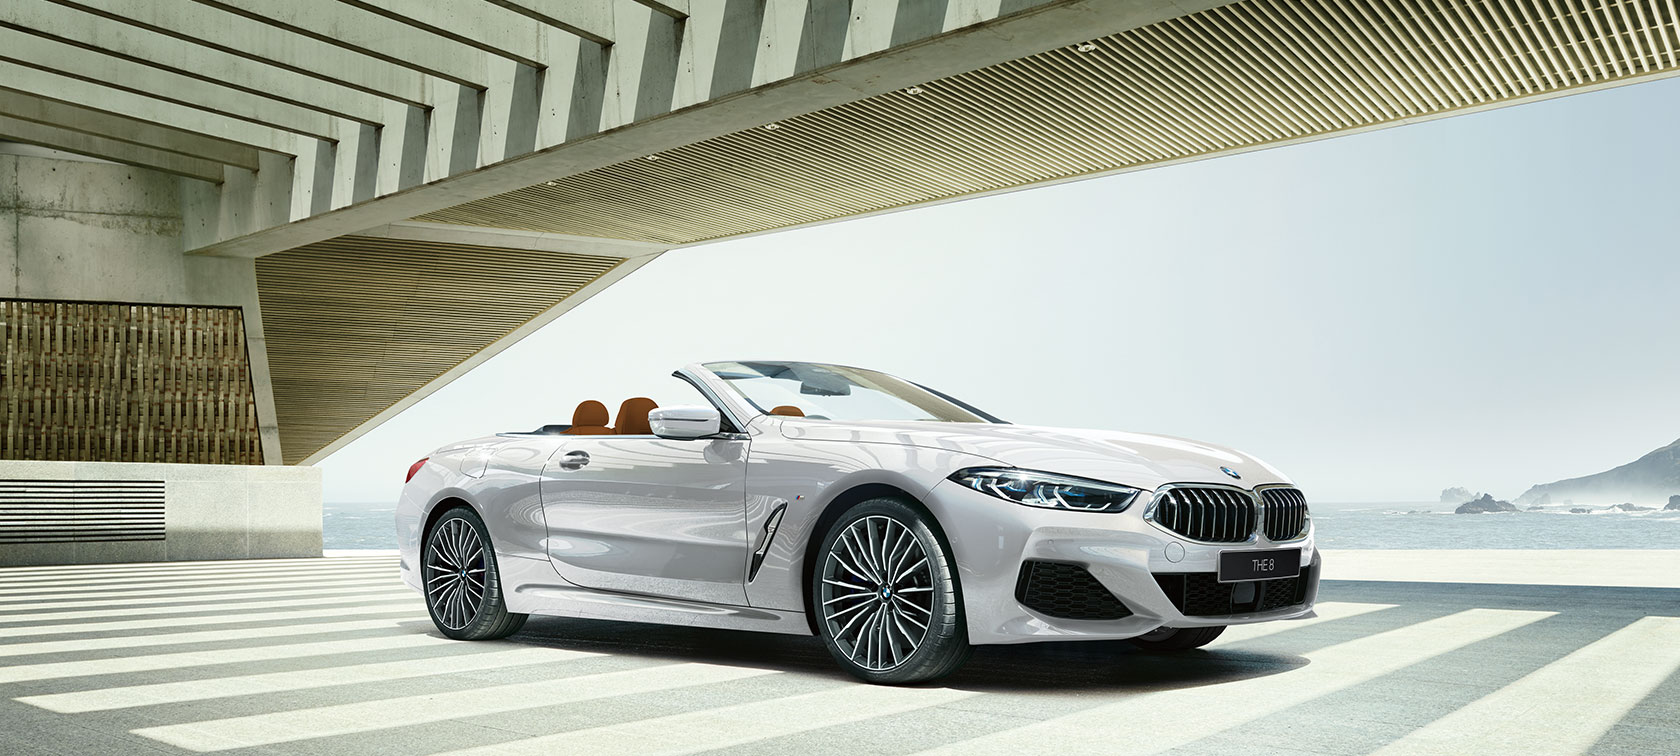 BMW 840d xDRIVE カブリオレ